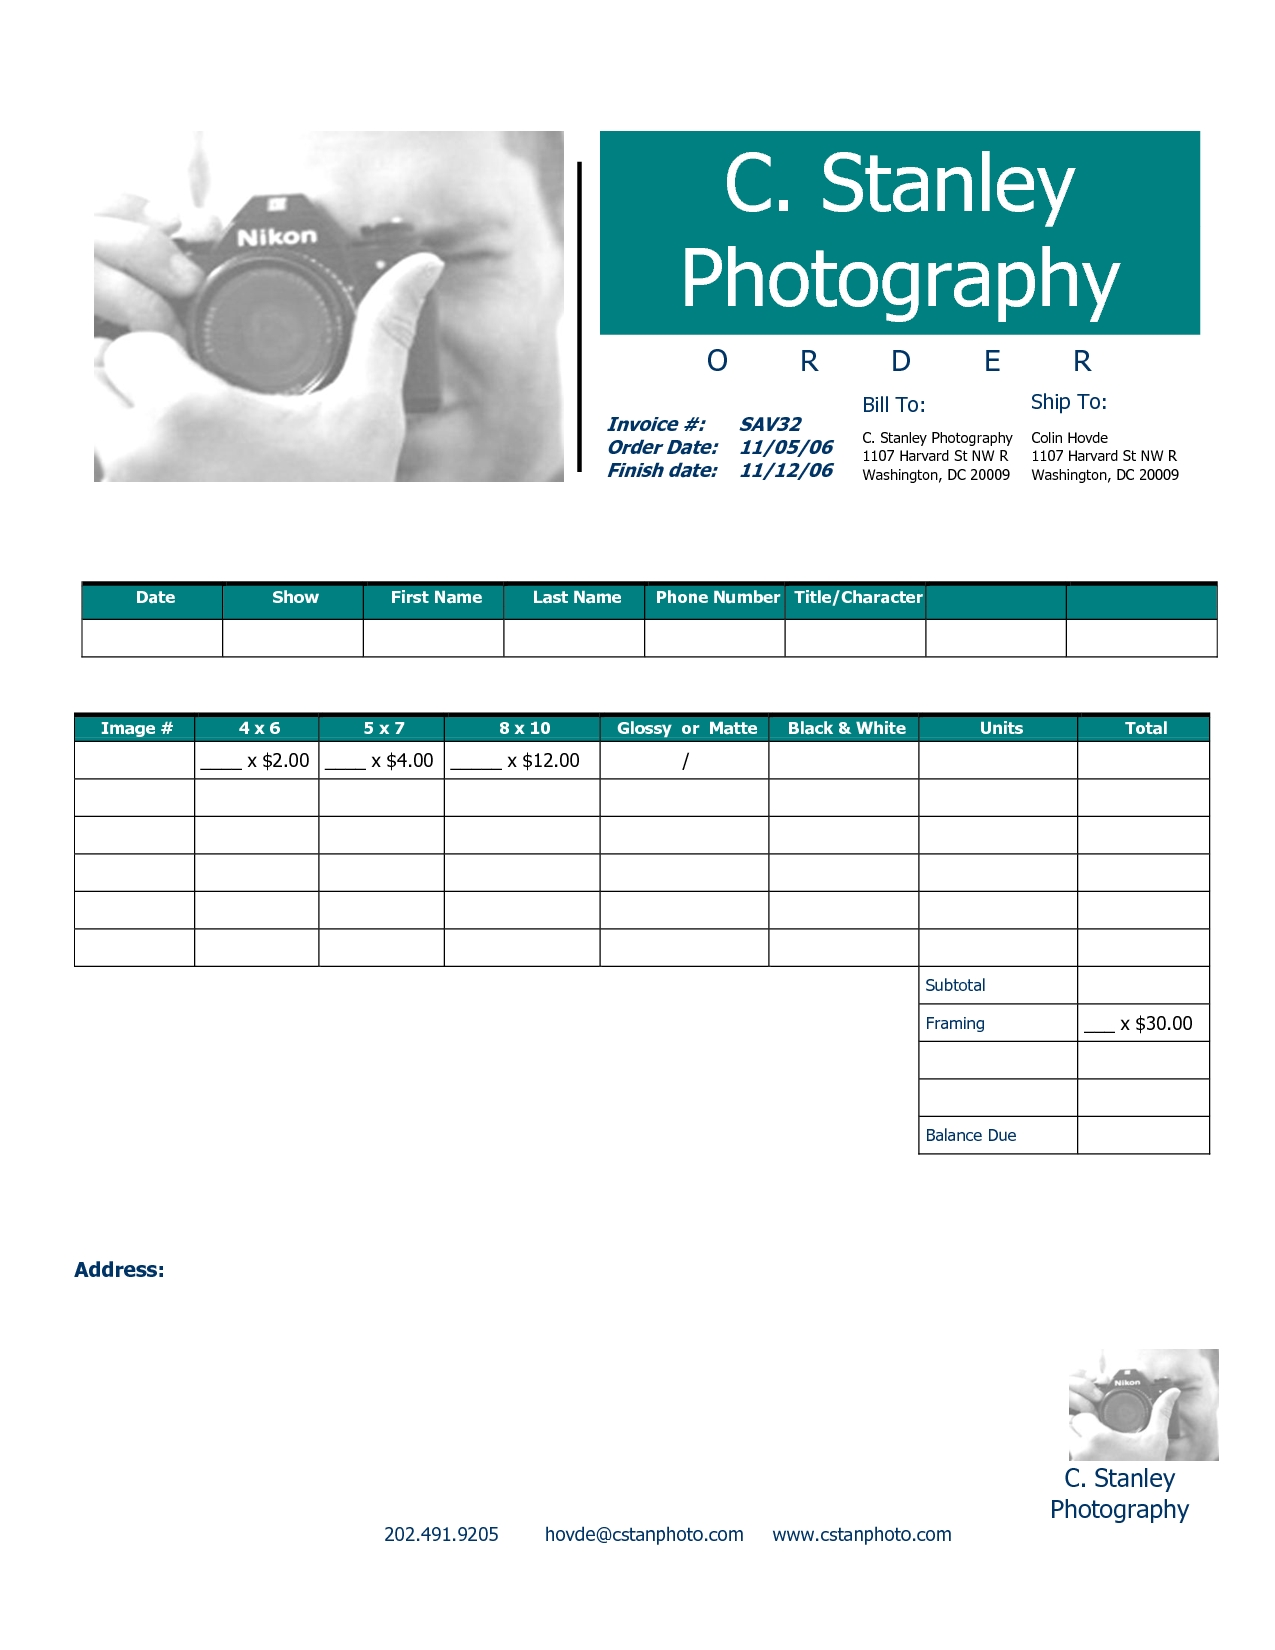 photography invoice template invoice templat examples of invoices invoice photography template